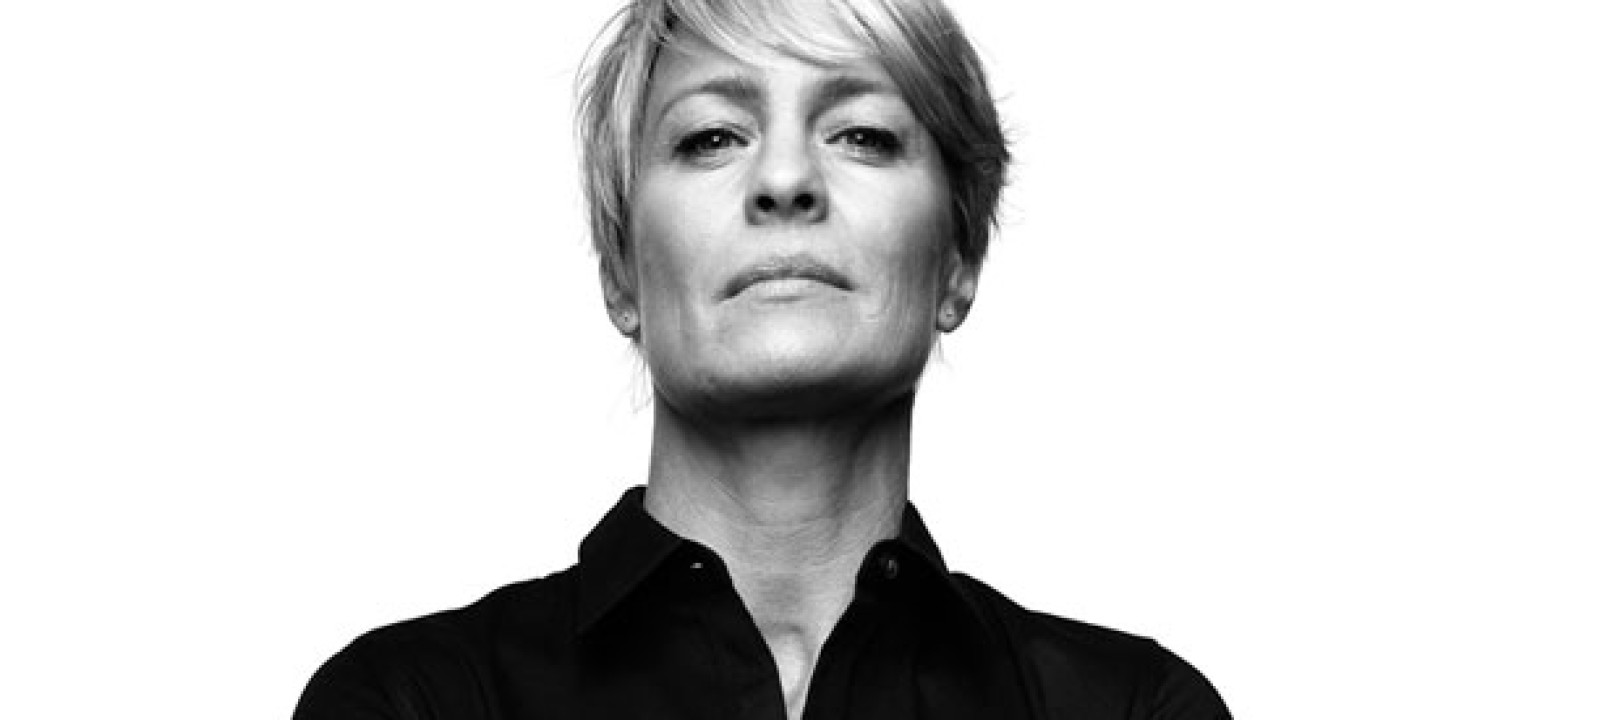 Robin Wright as Claire Underwood in 'House of Cards' (Pic: Netflix)